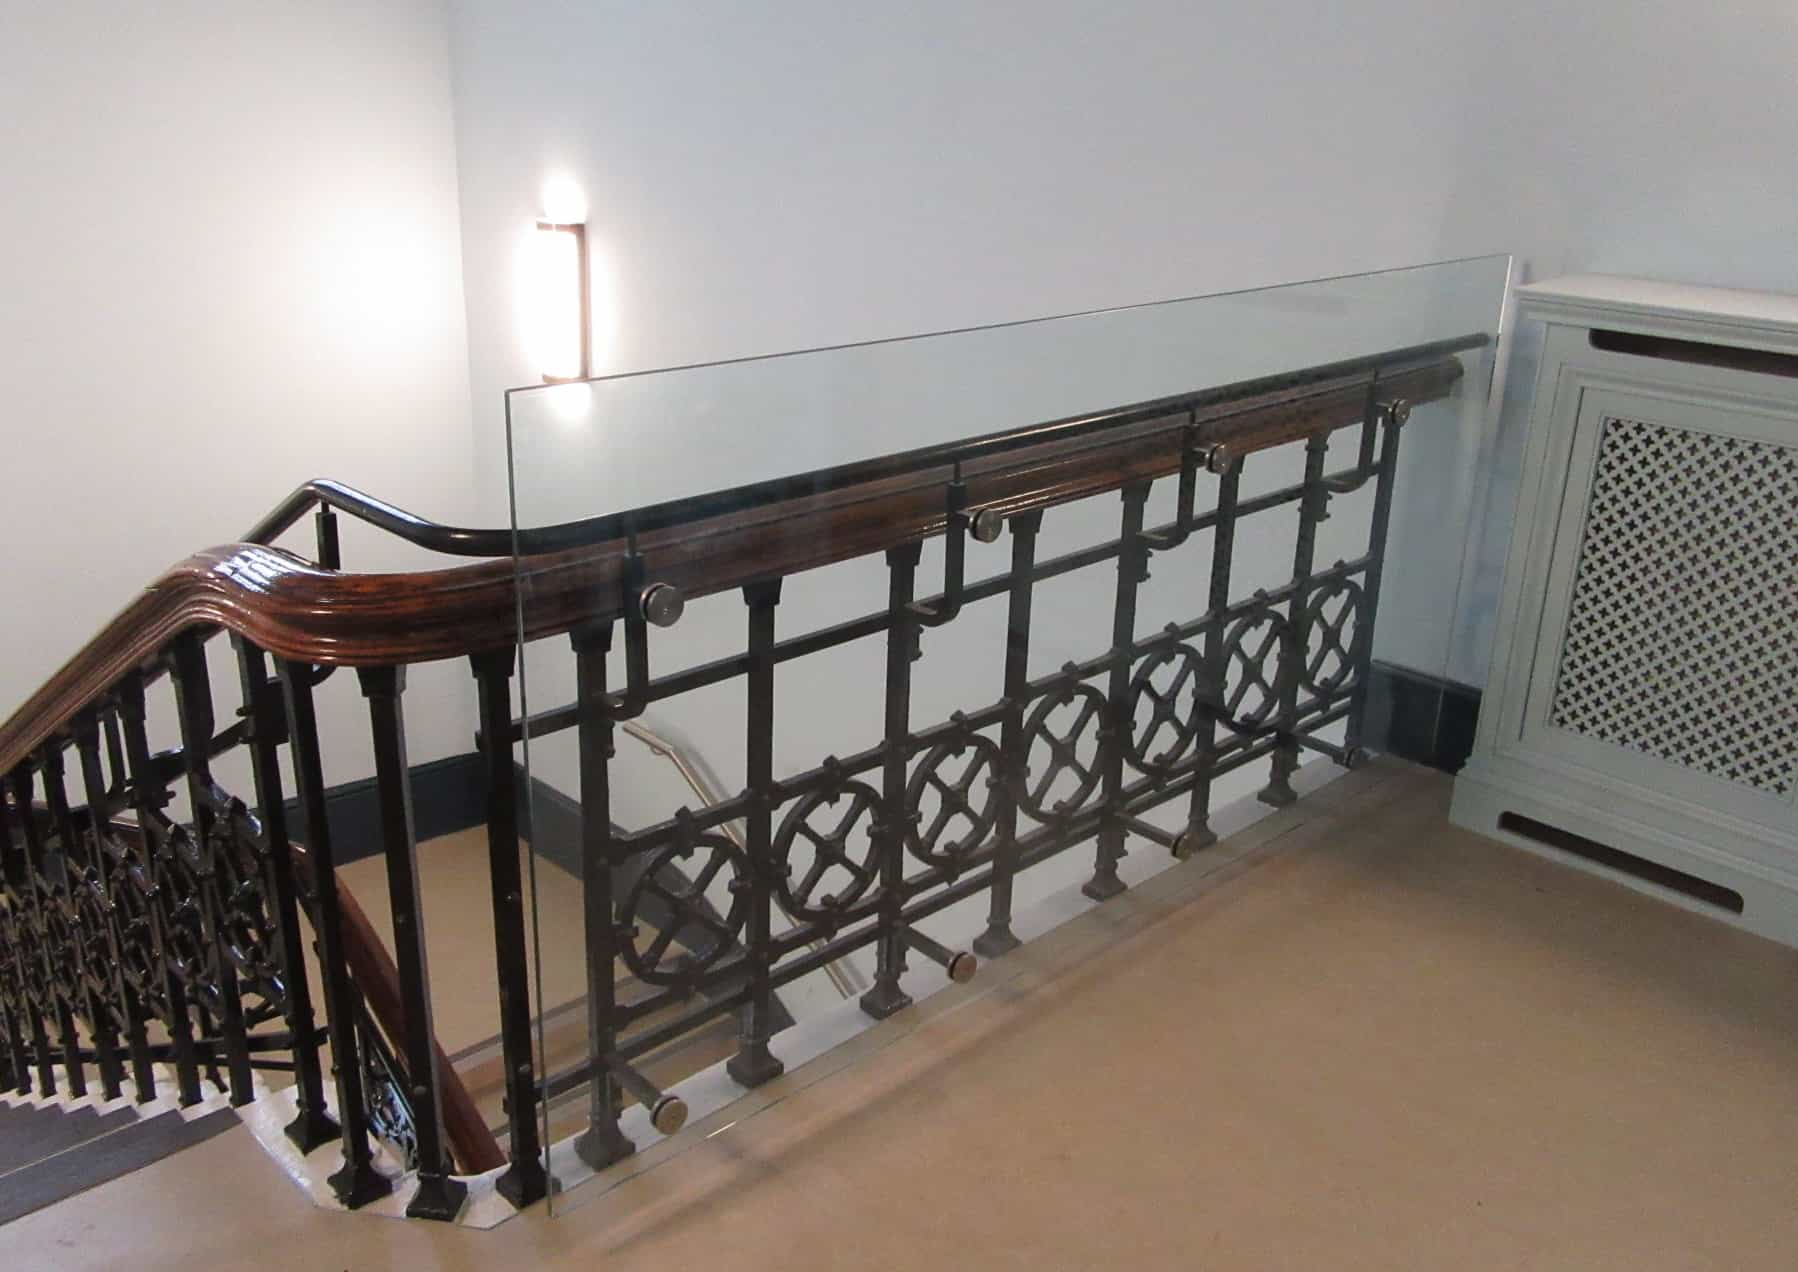 Hastings Library Custom Glazed Bolted Balustrade